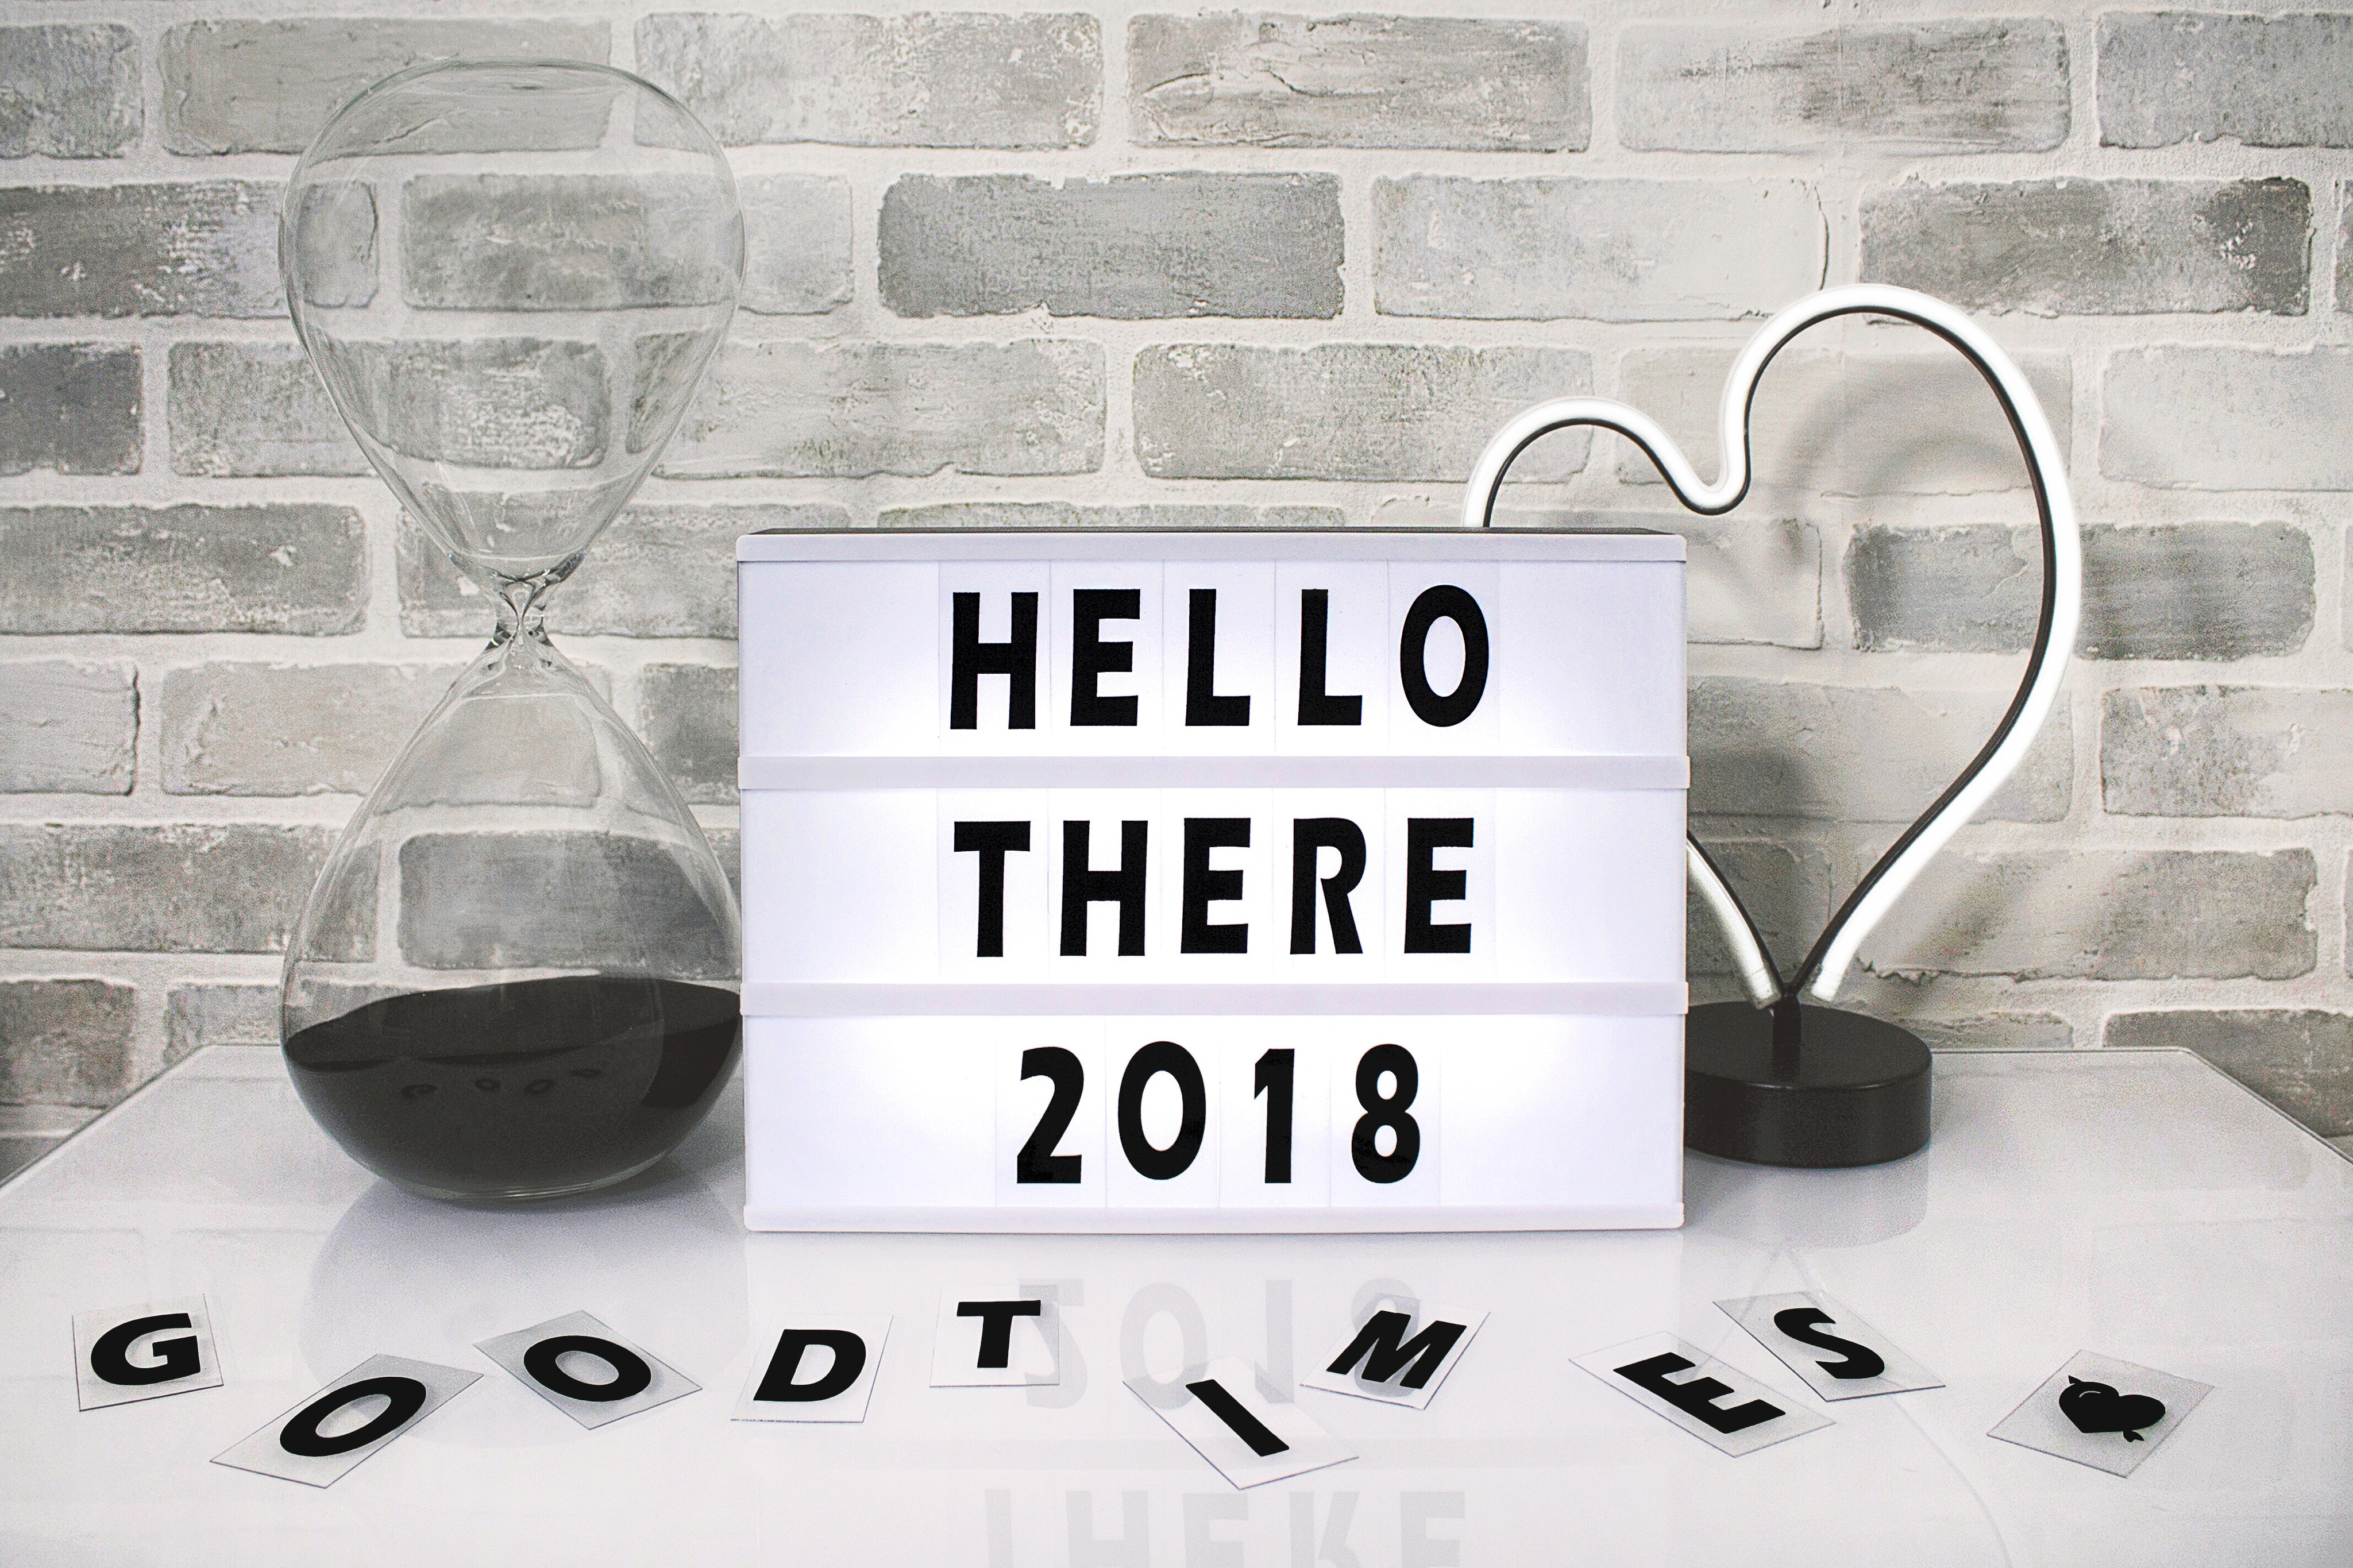 White hello there 2018 printed board against gray wall photo